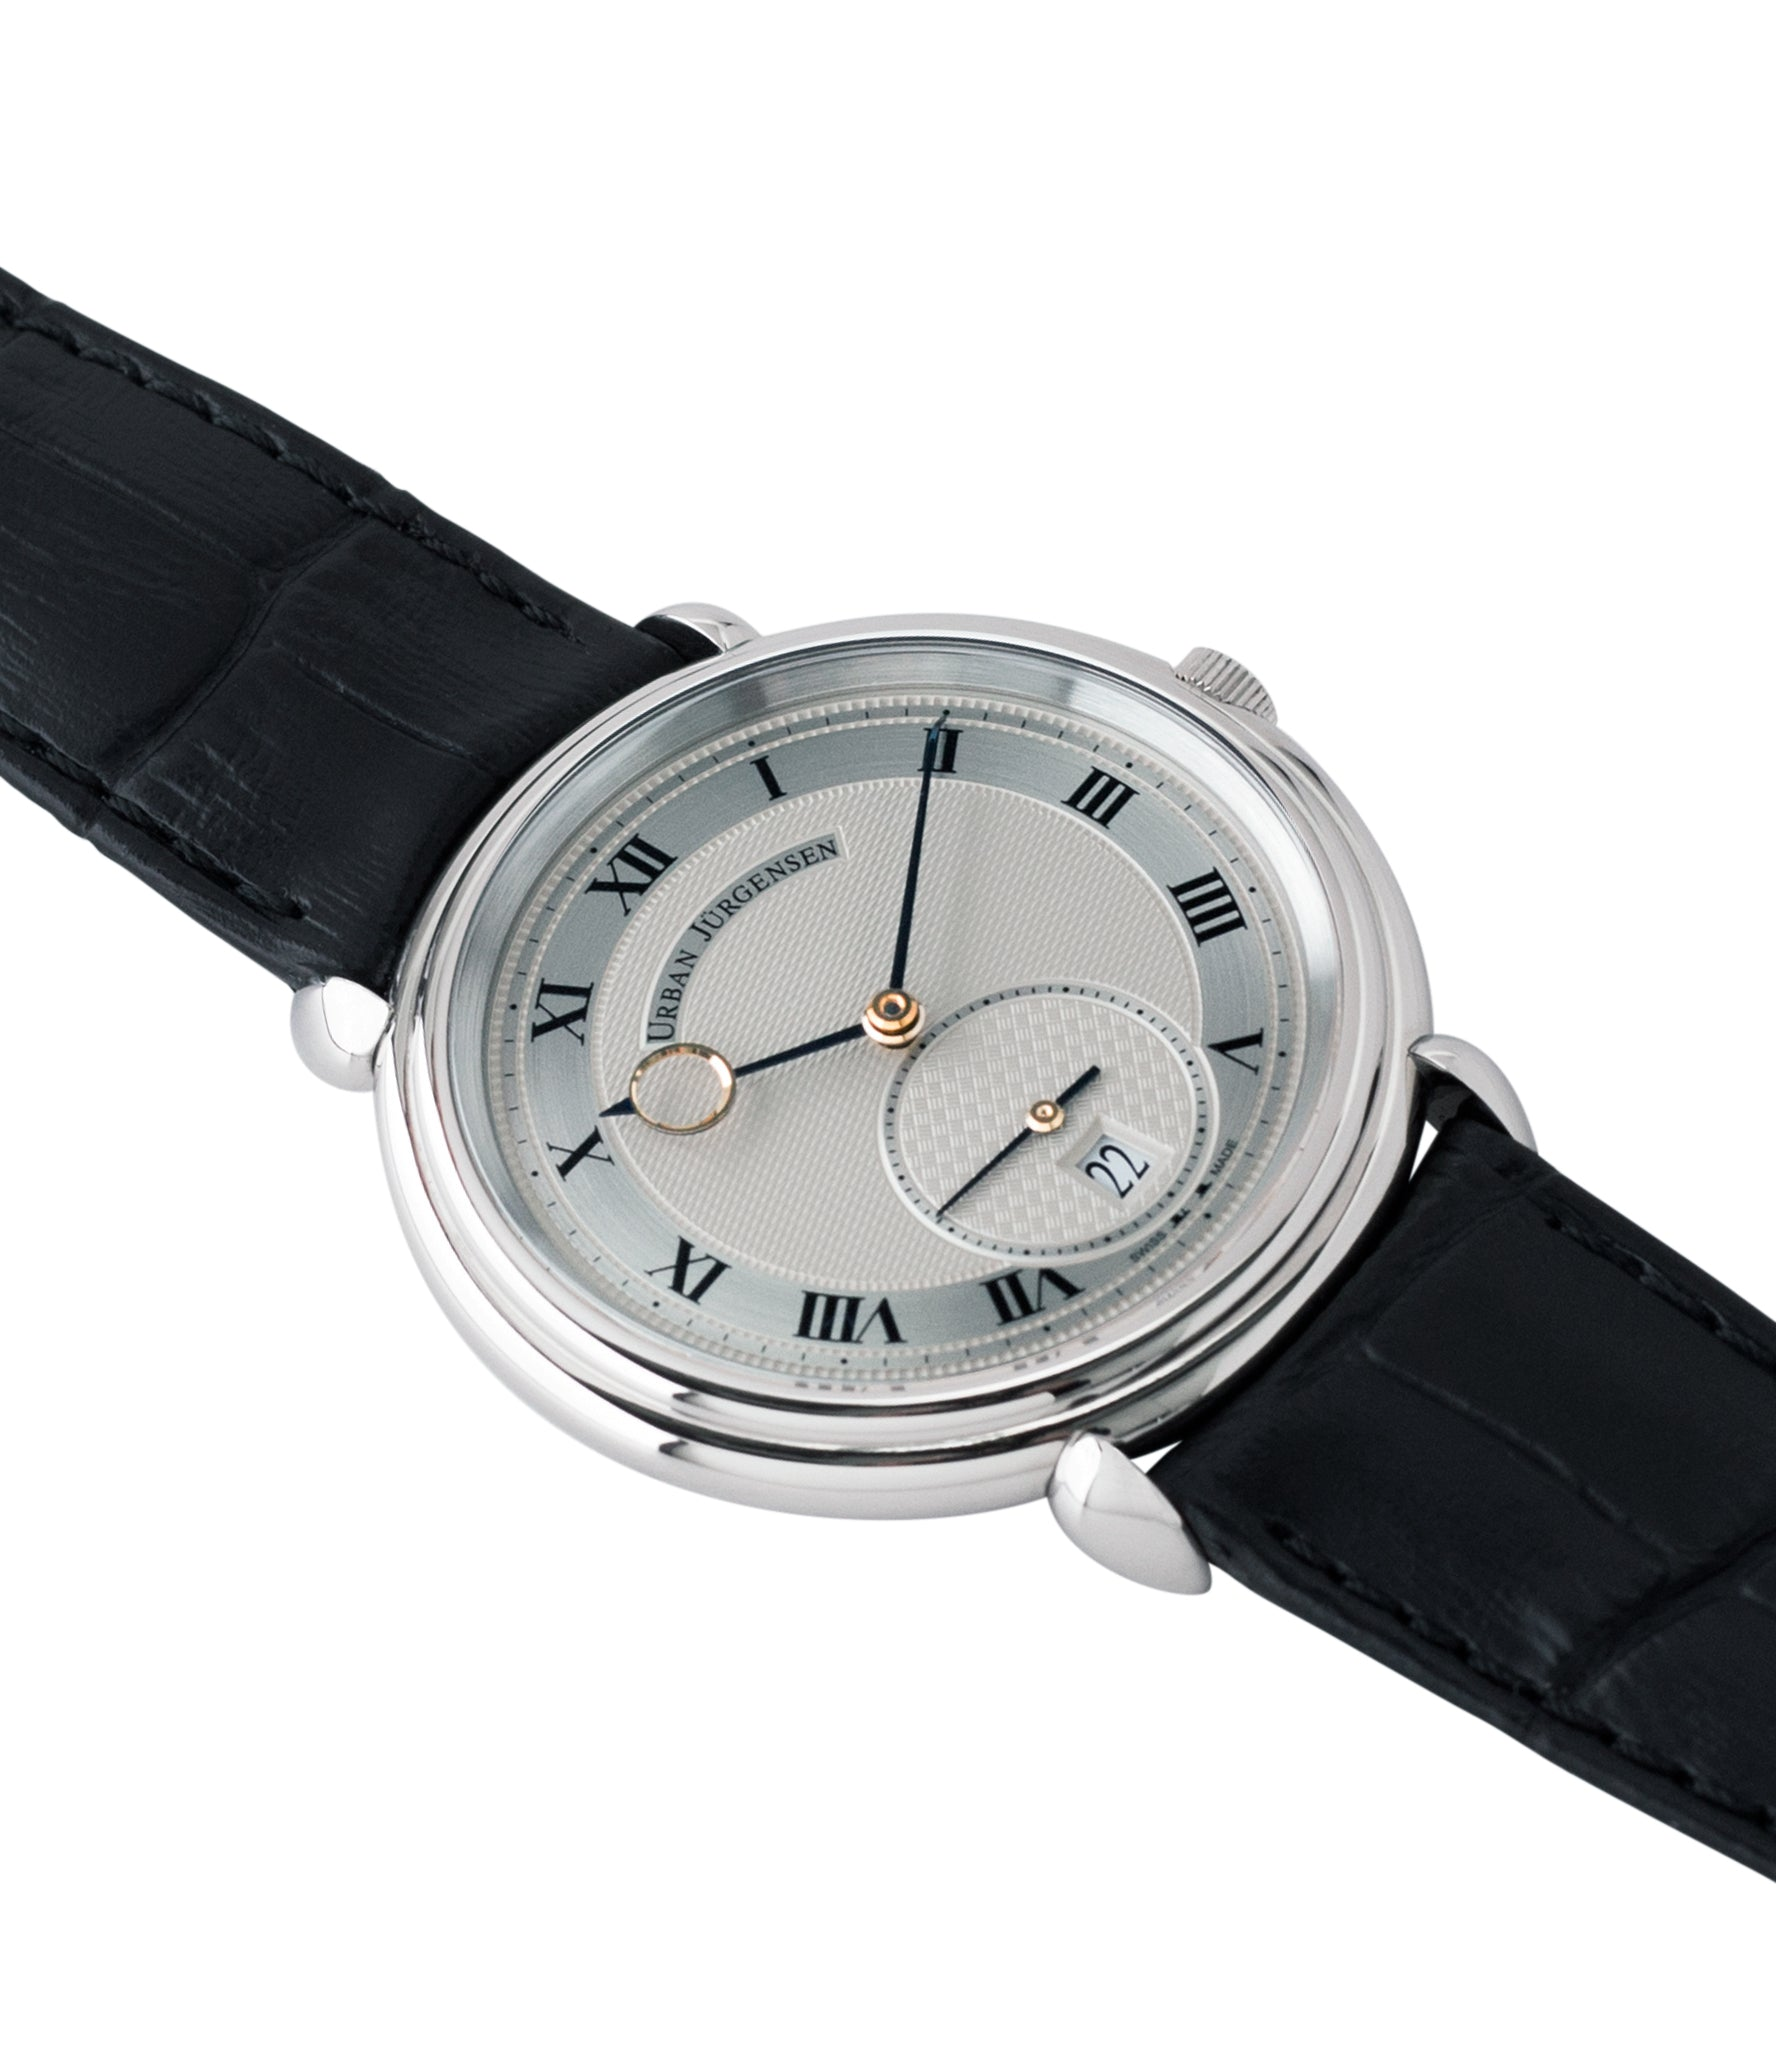 new Urban Jurgensen Big8 steel watch online at A Collected Man London specialist retailer of independent watchamkers